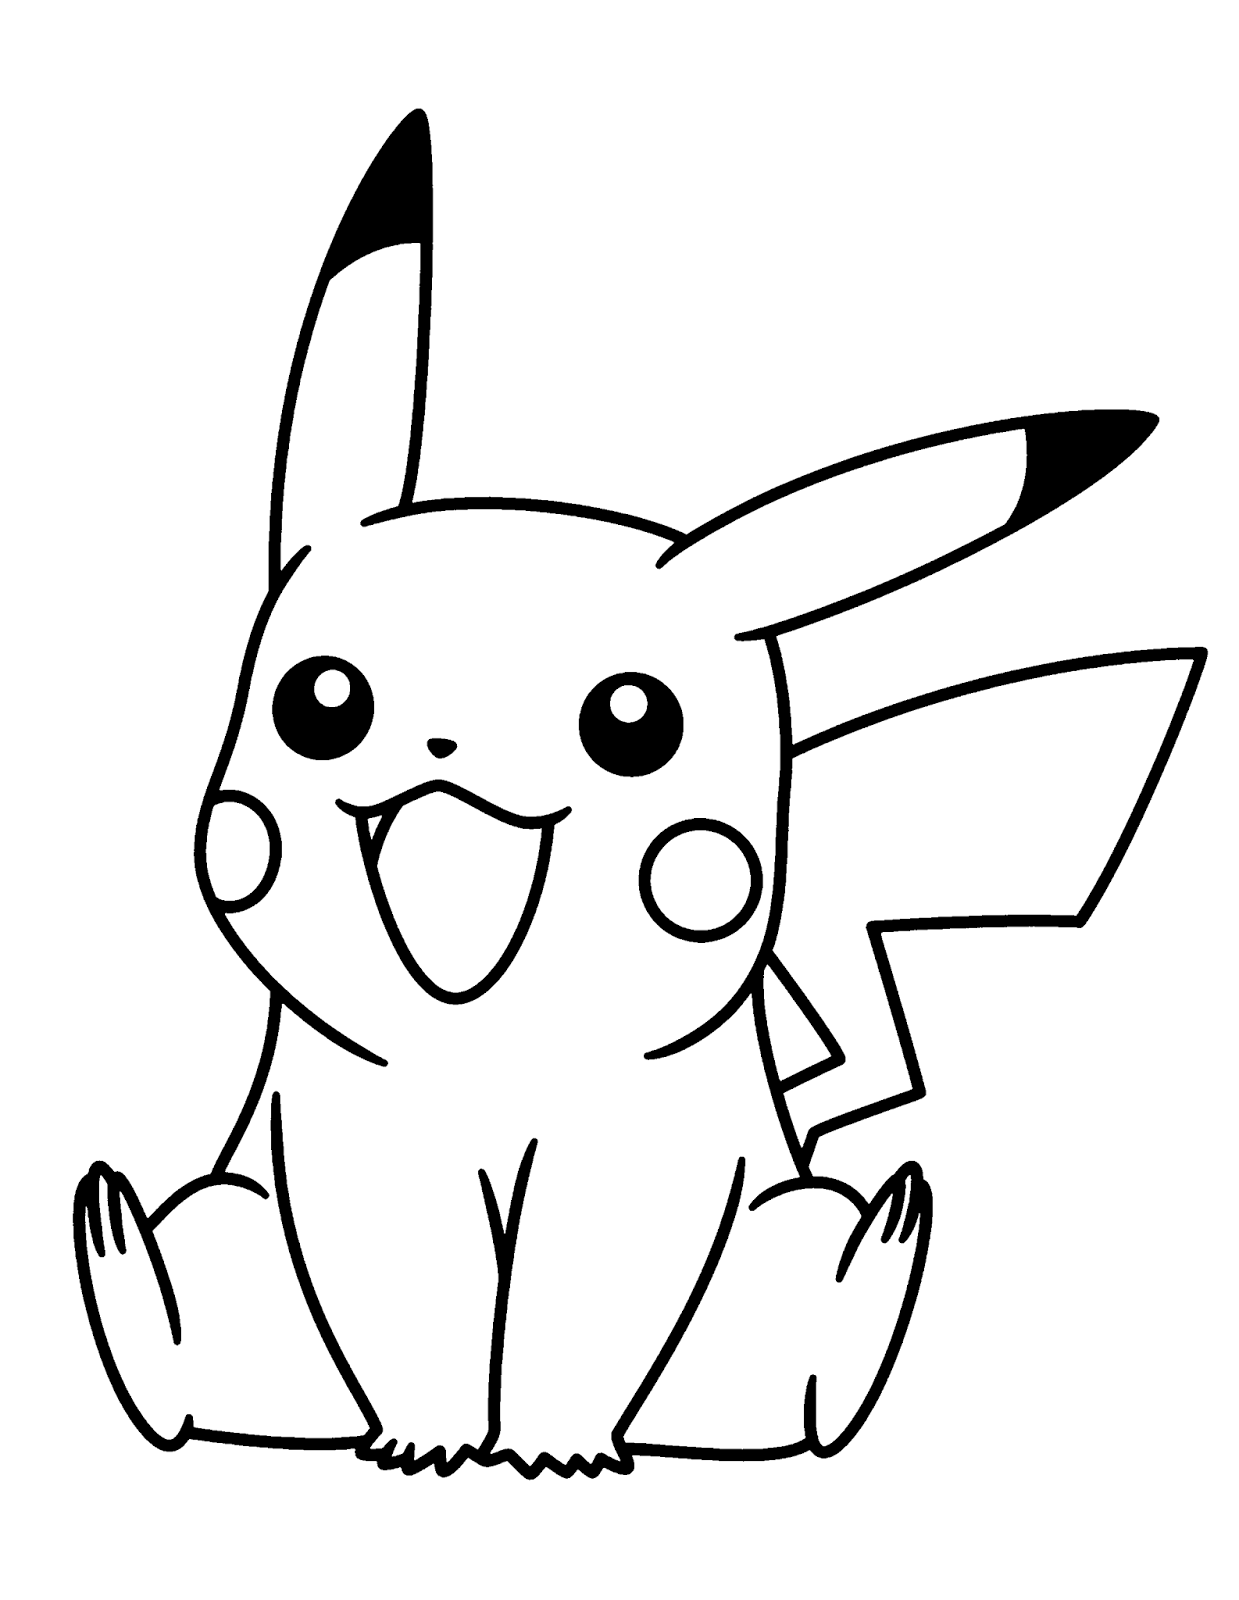 free coloring pokemon pages pokemon coloring pages free large images pages free pokemon coloring